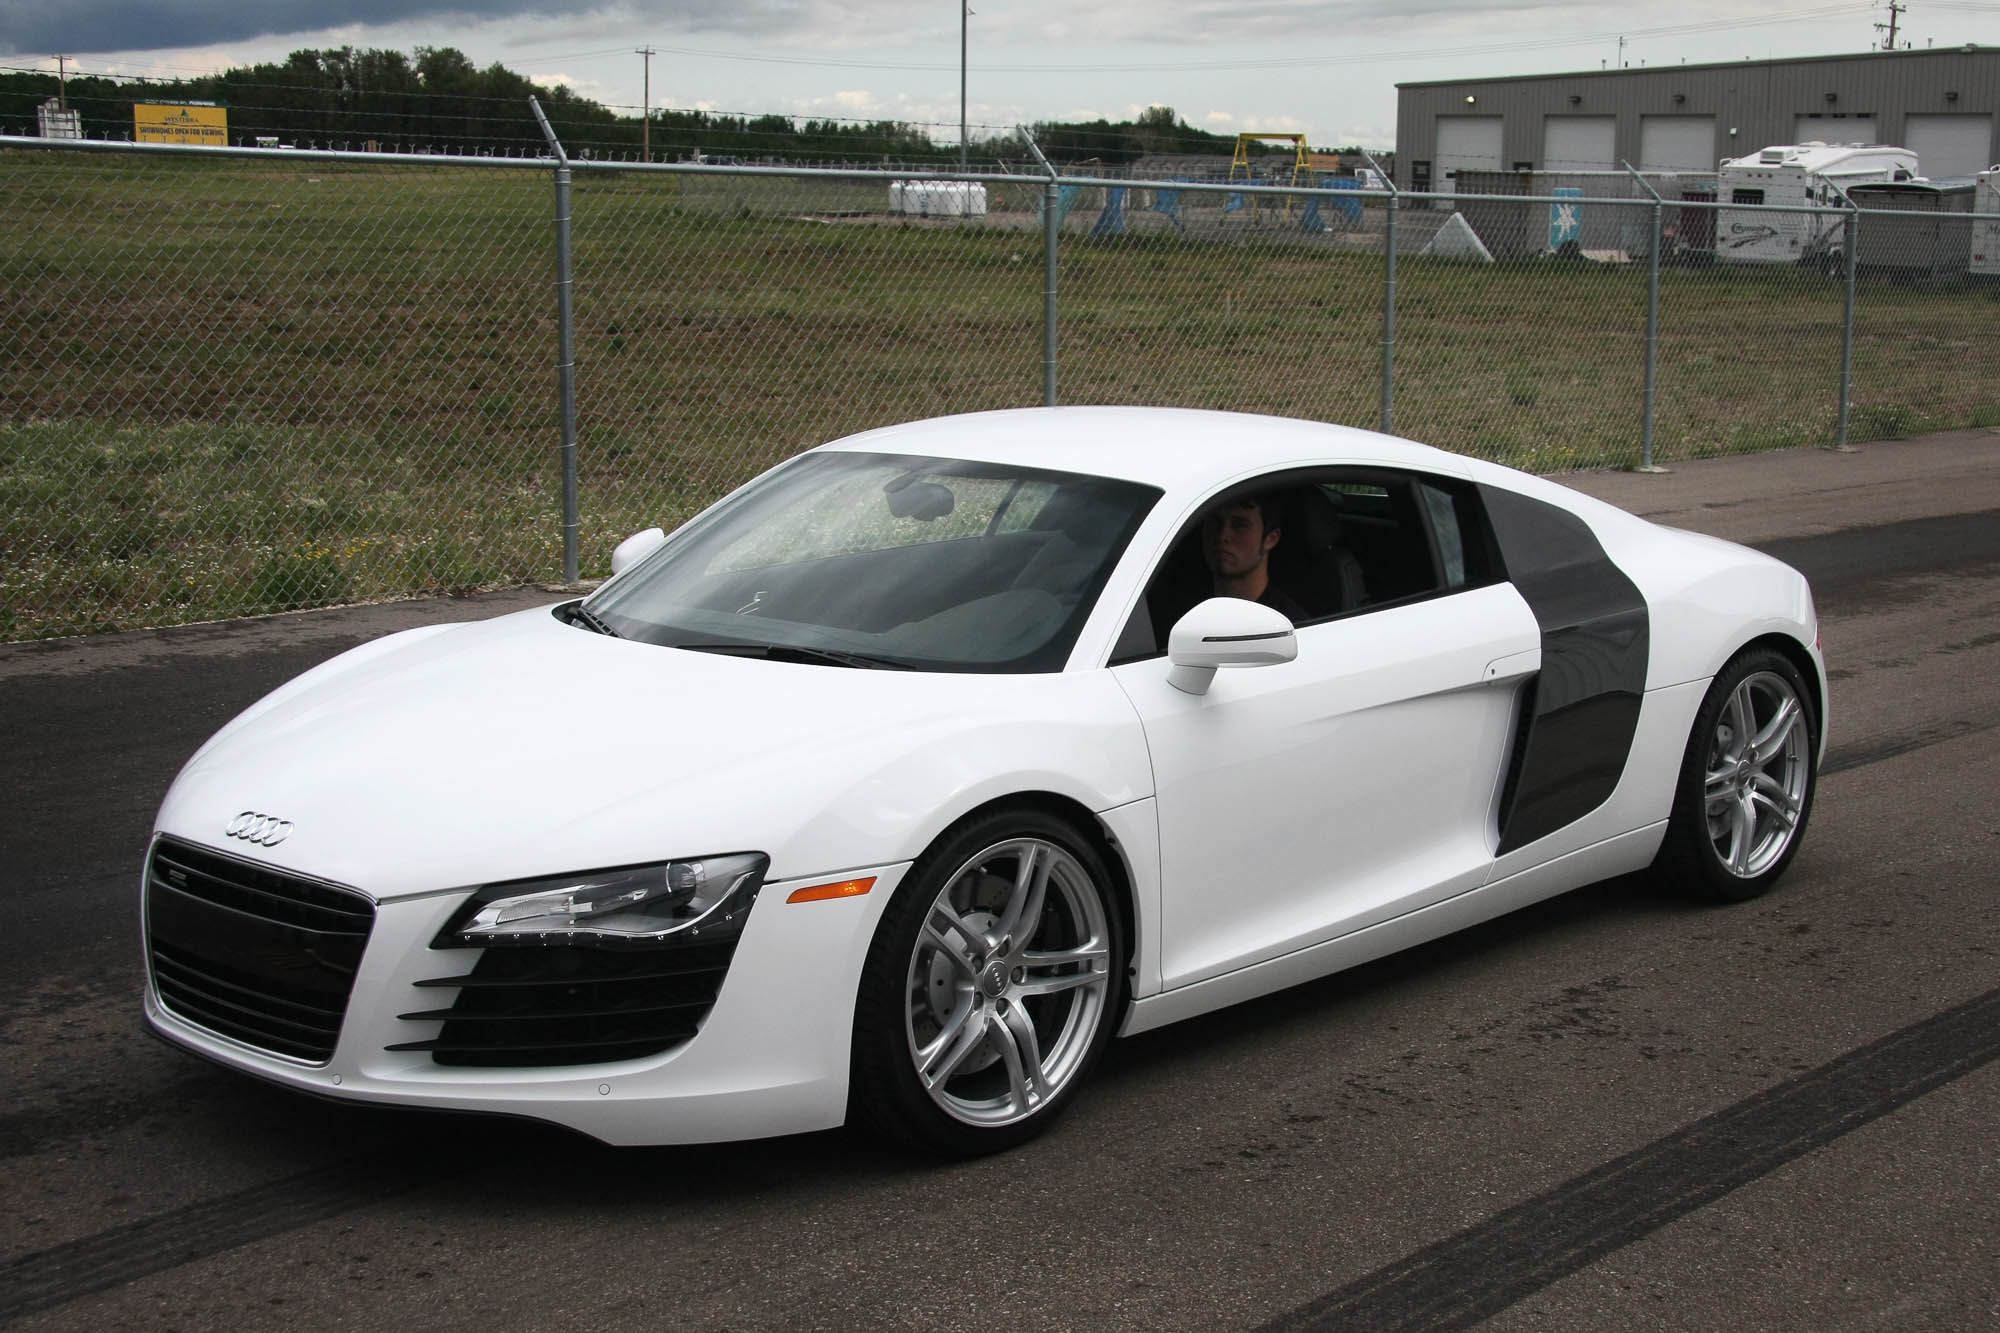 Audi For Sale >> 2009 Audi R8 - Sold - The Iron Garage